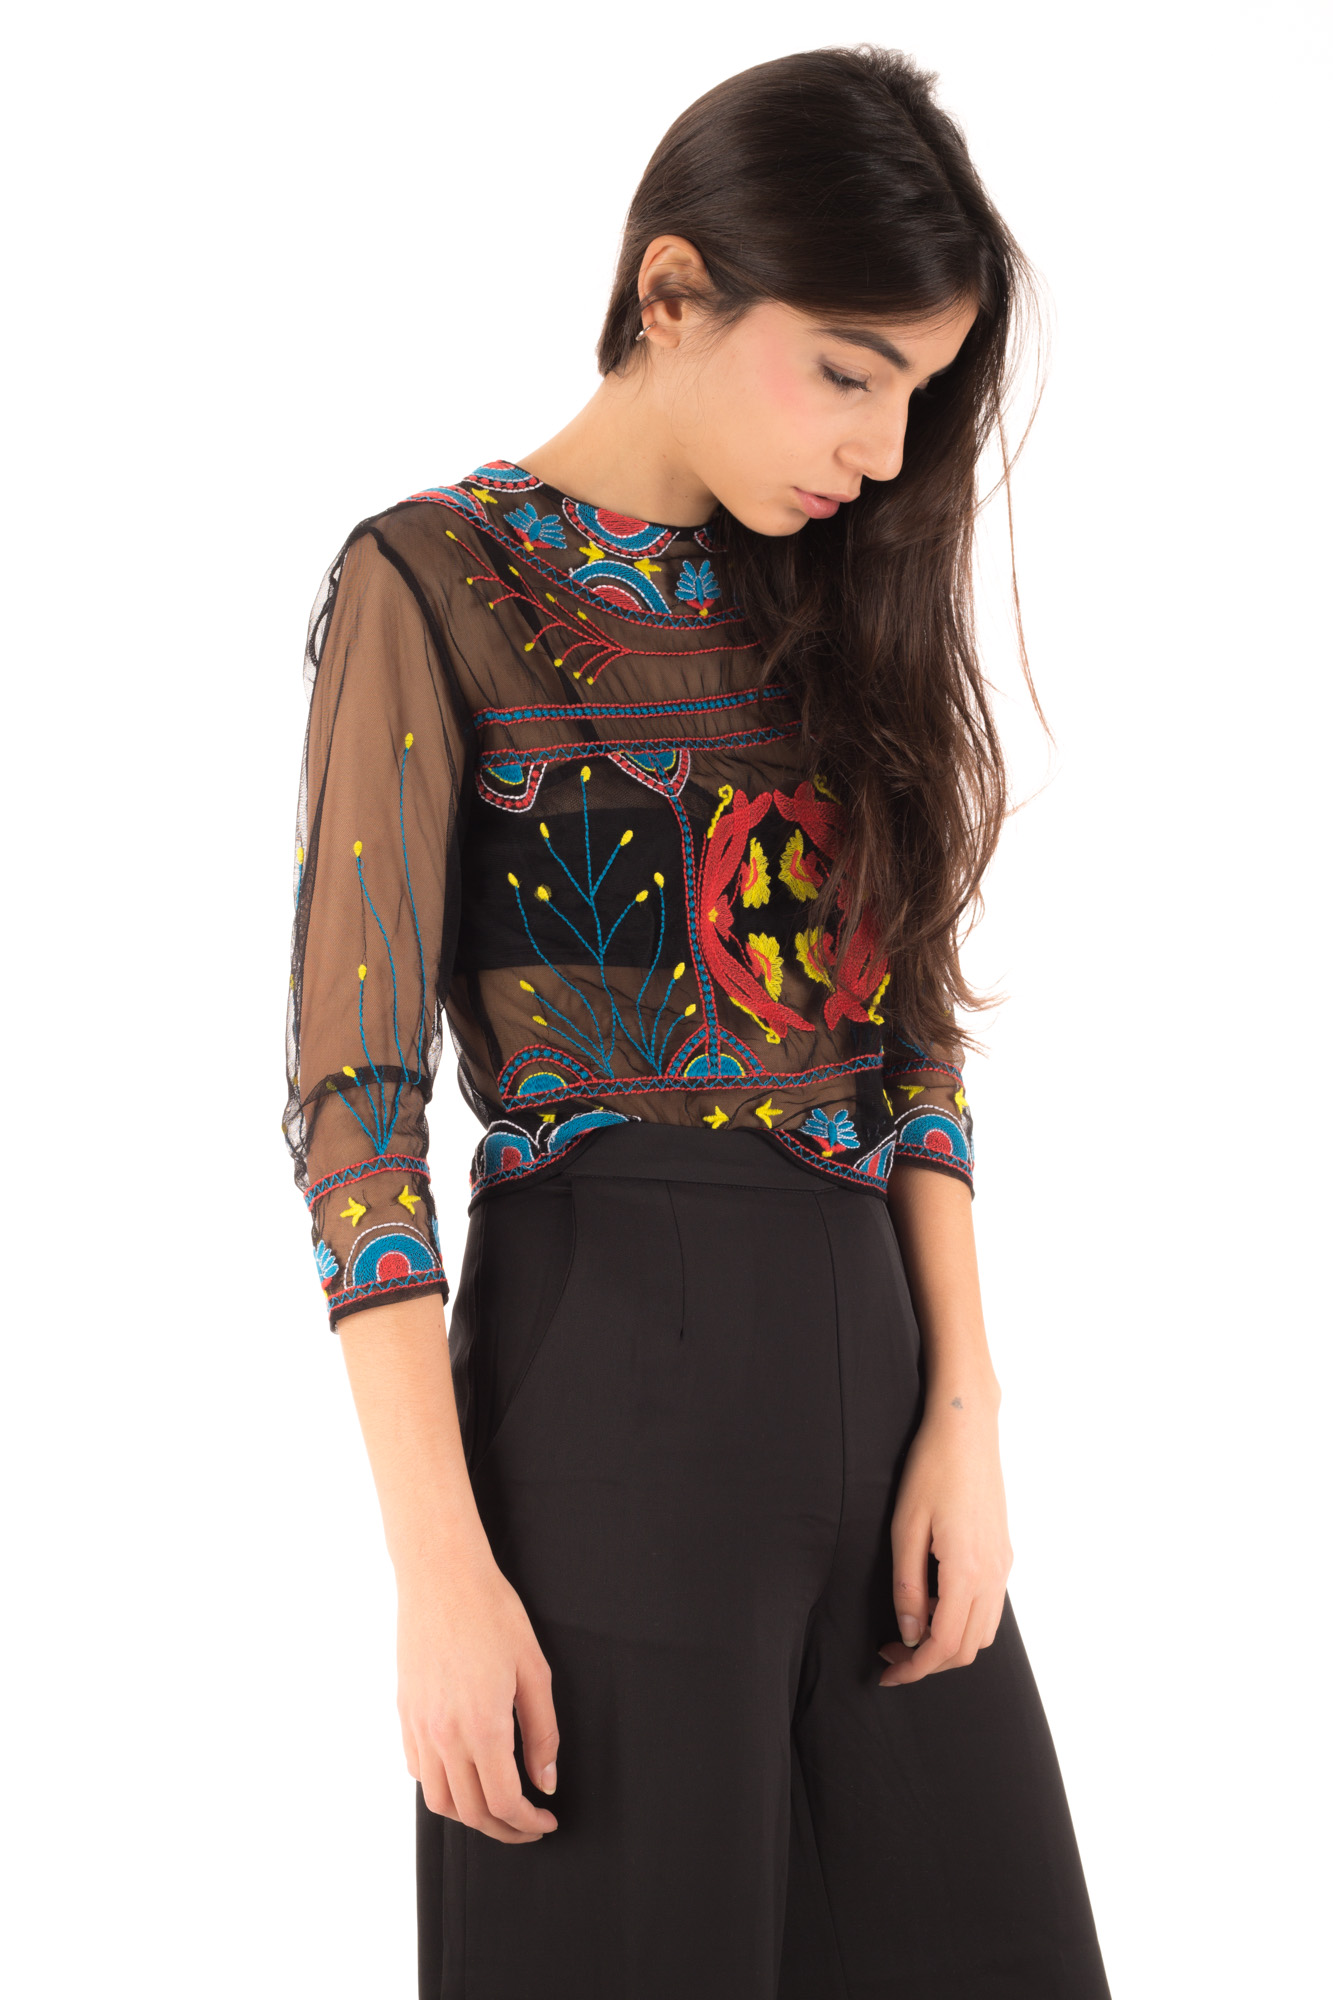 Glamorous - See-through Beaded T-Shirt with embroidery